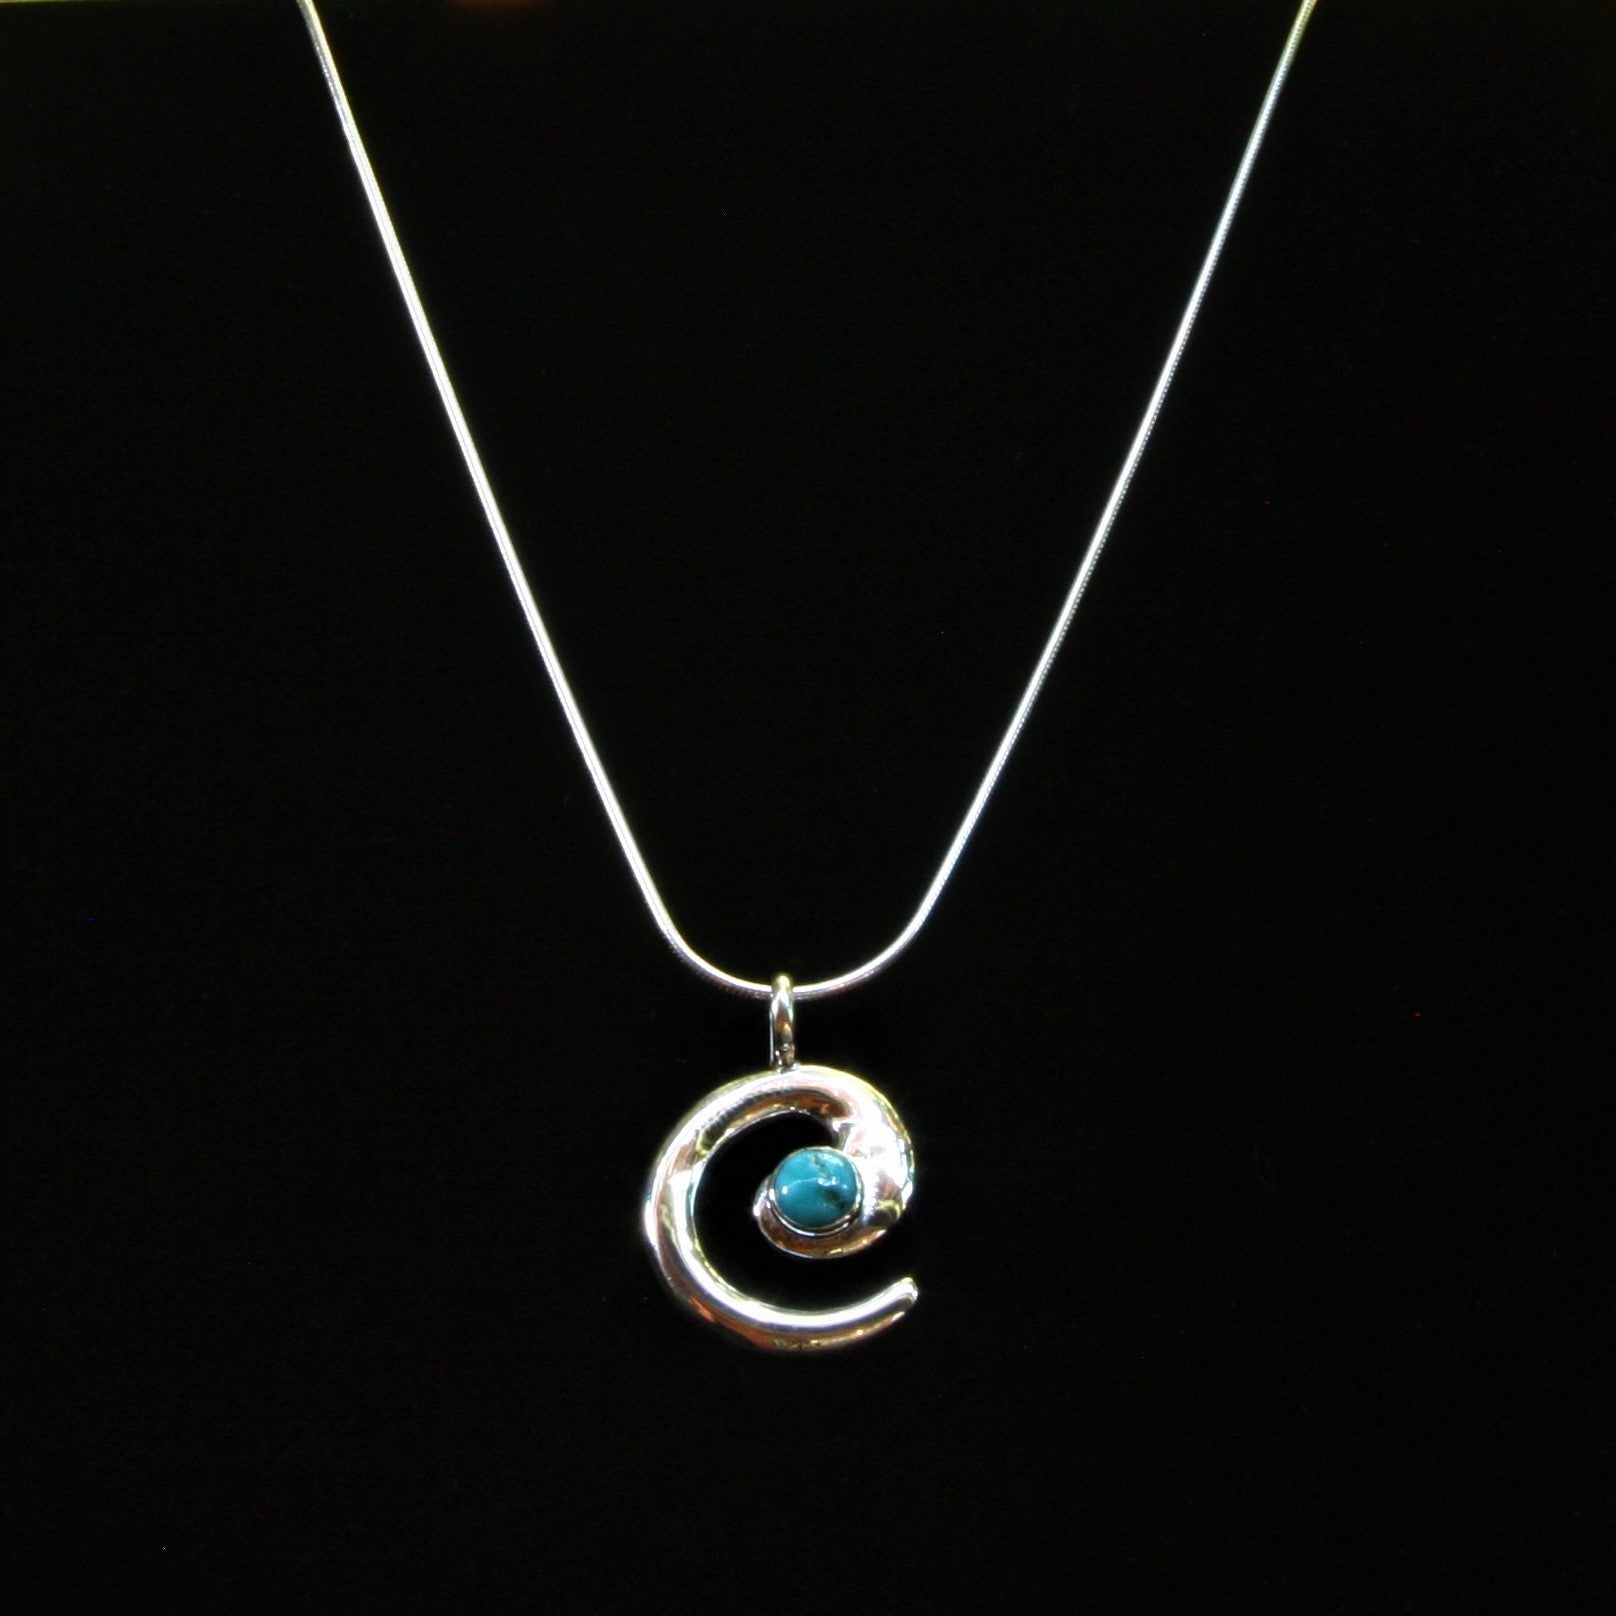 Navajo Circle of Life Pendant with Morenci Turquoise 1″